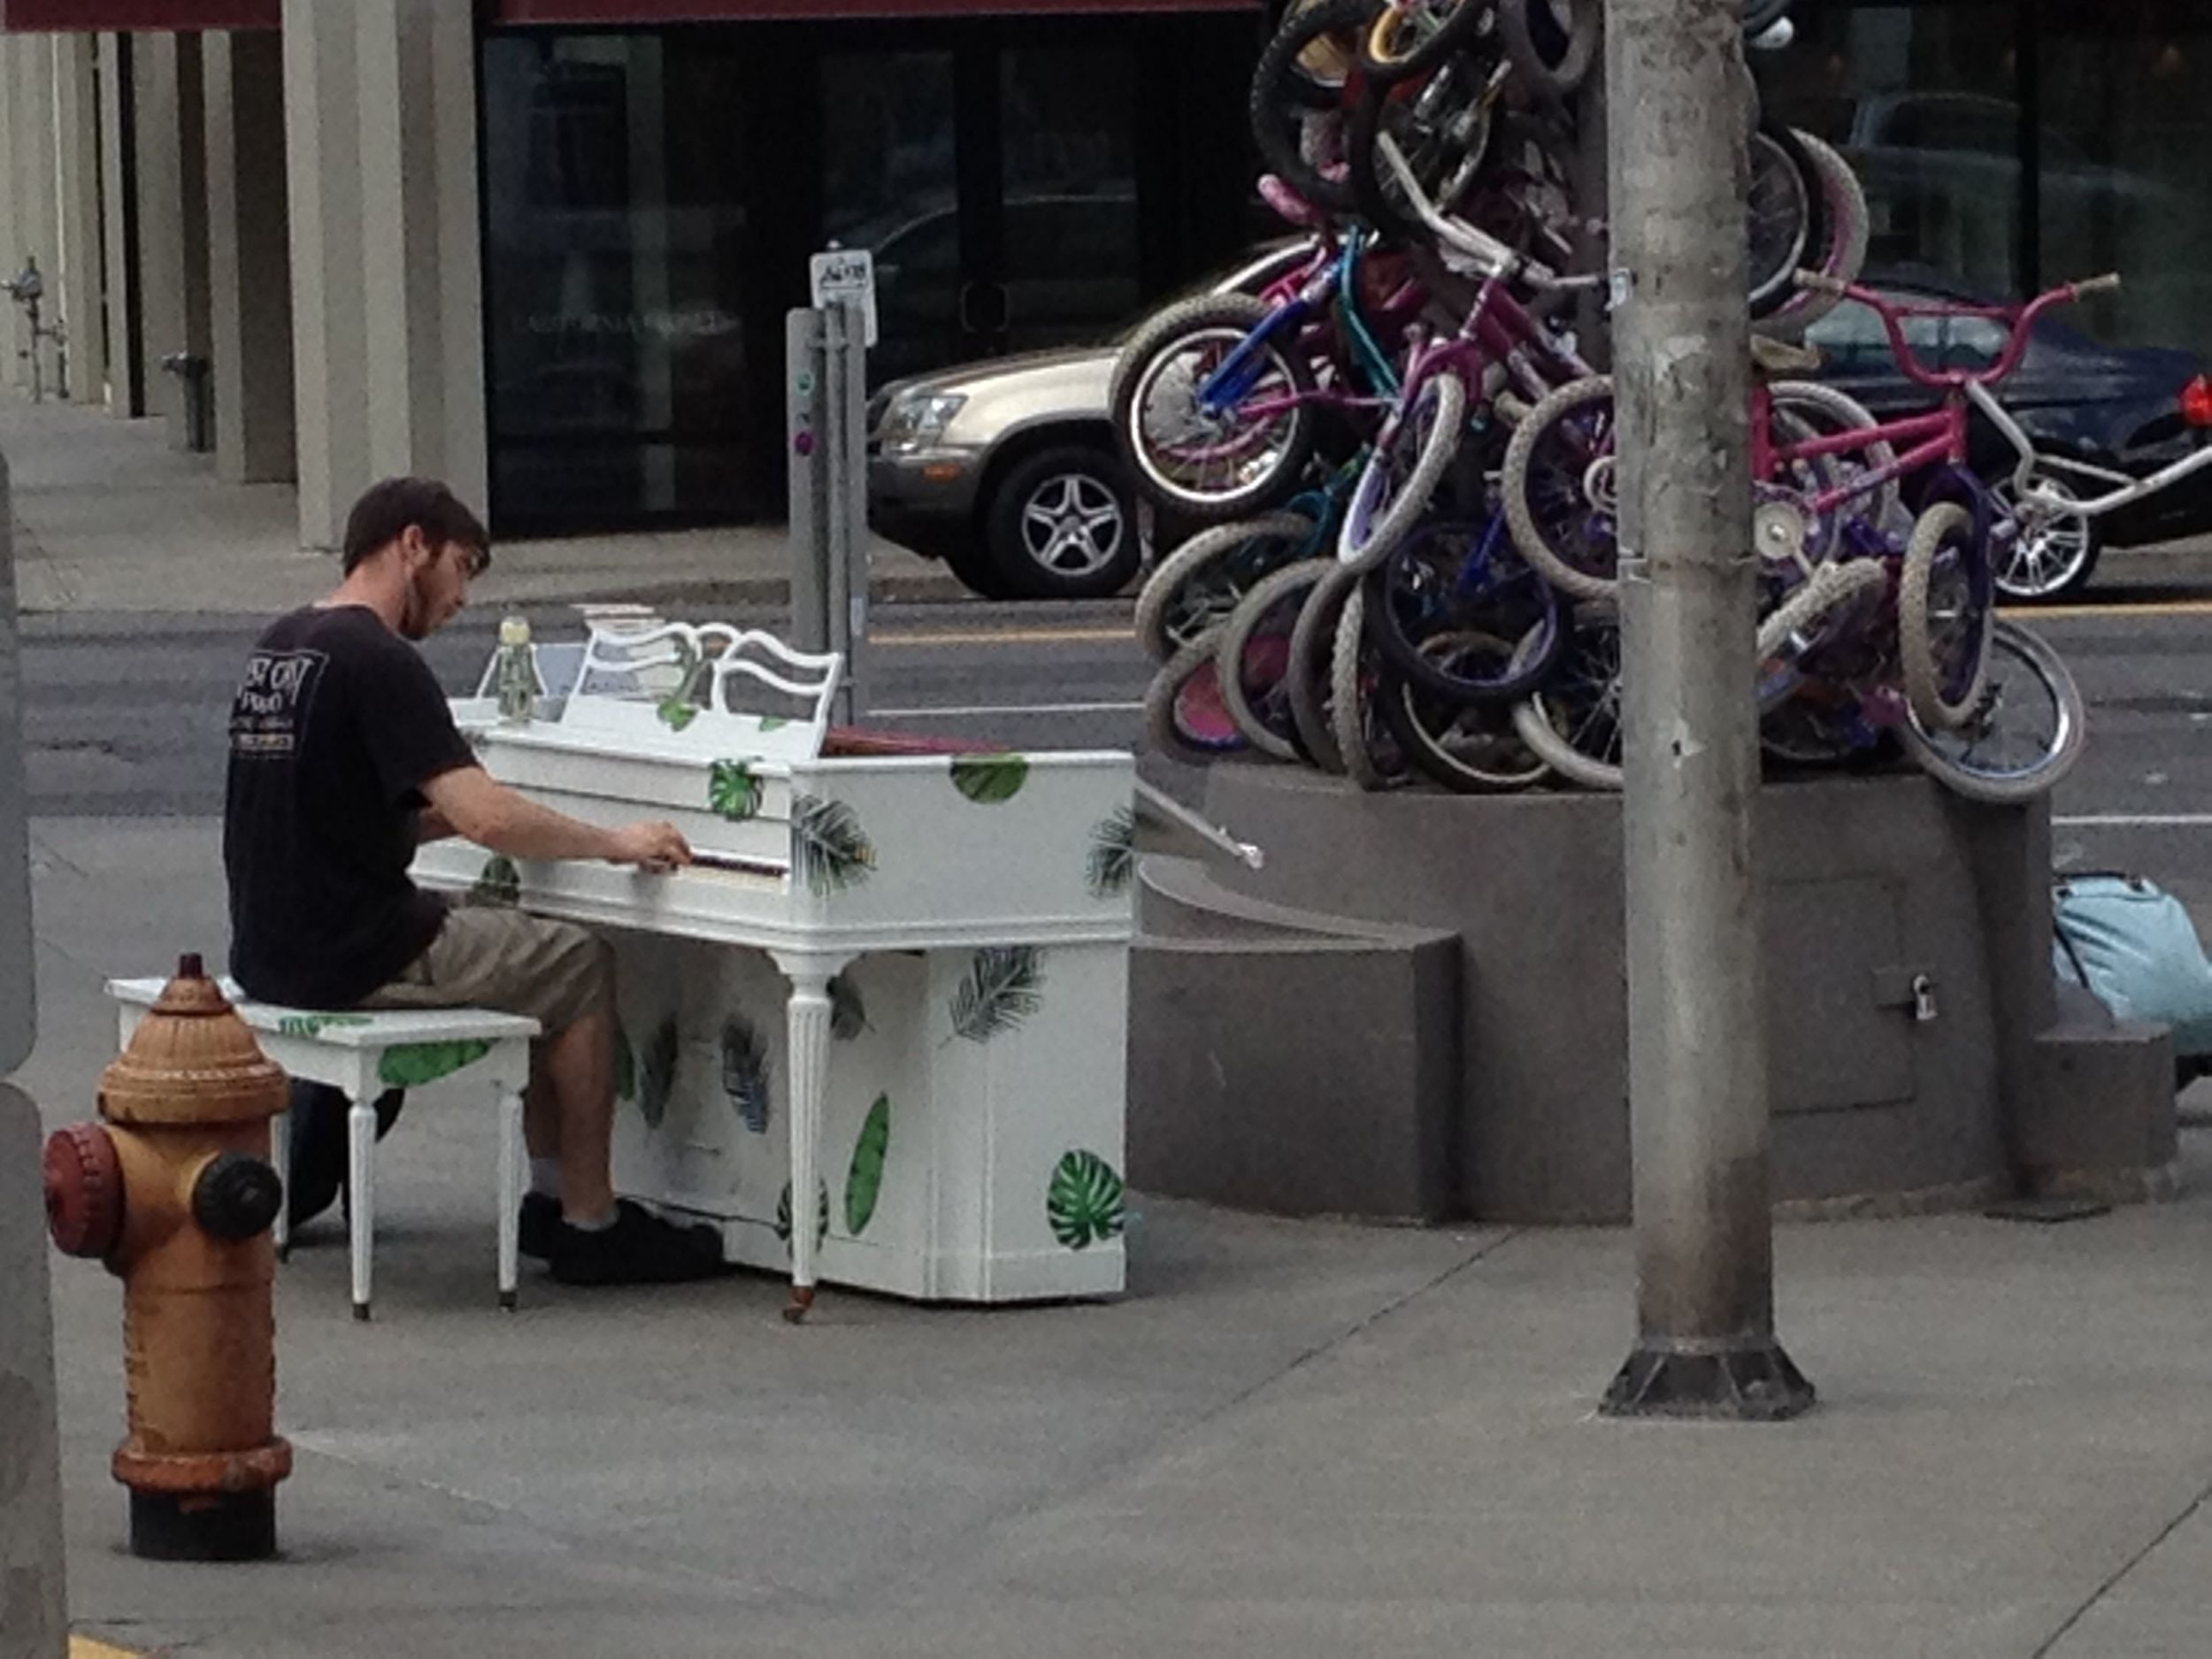 Respite between shows...in Portland, Oregon there are random pianos scattered around town for anyone to play. This spot happened to also have a tiers bicycle totem.